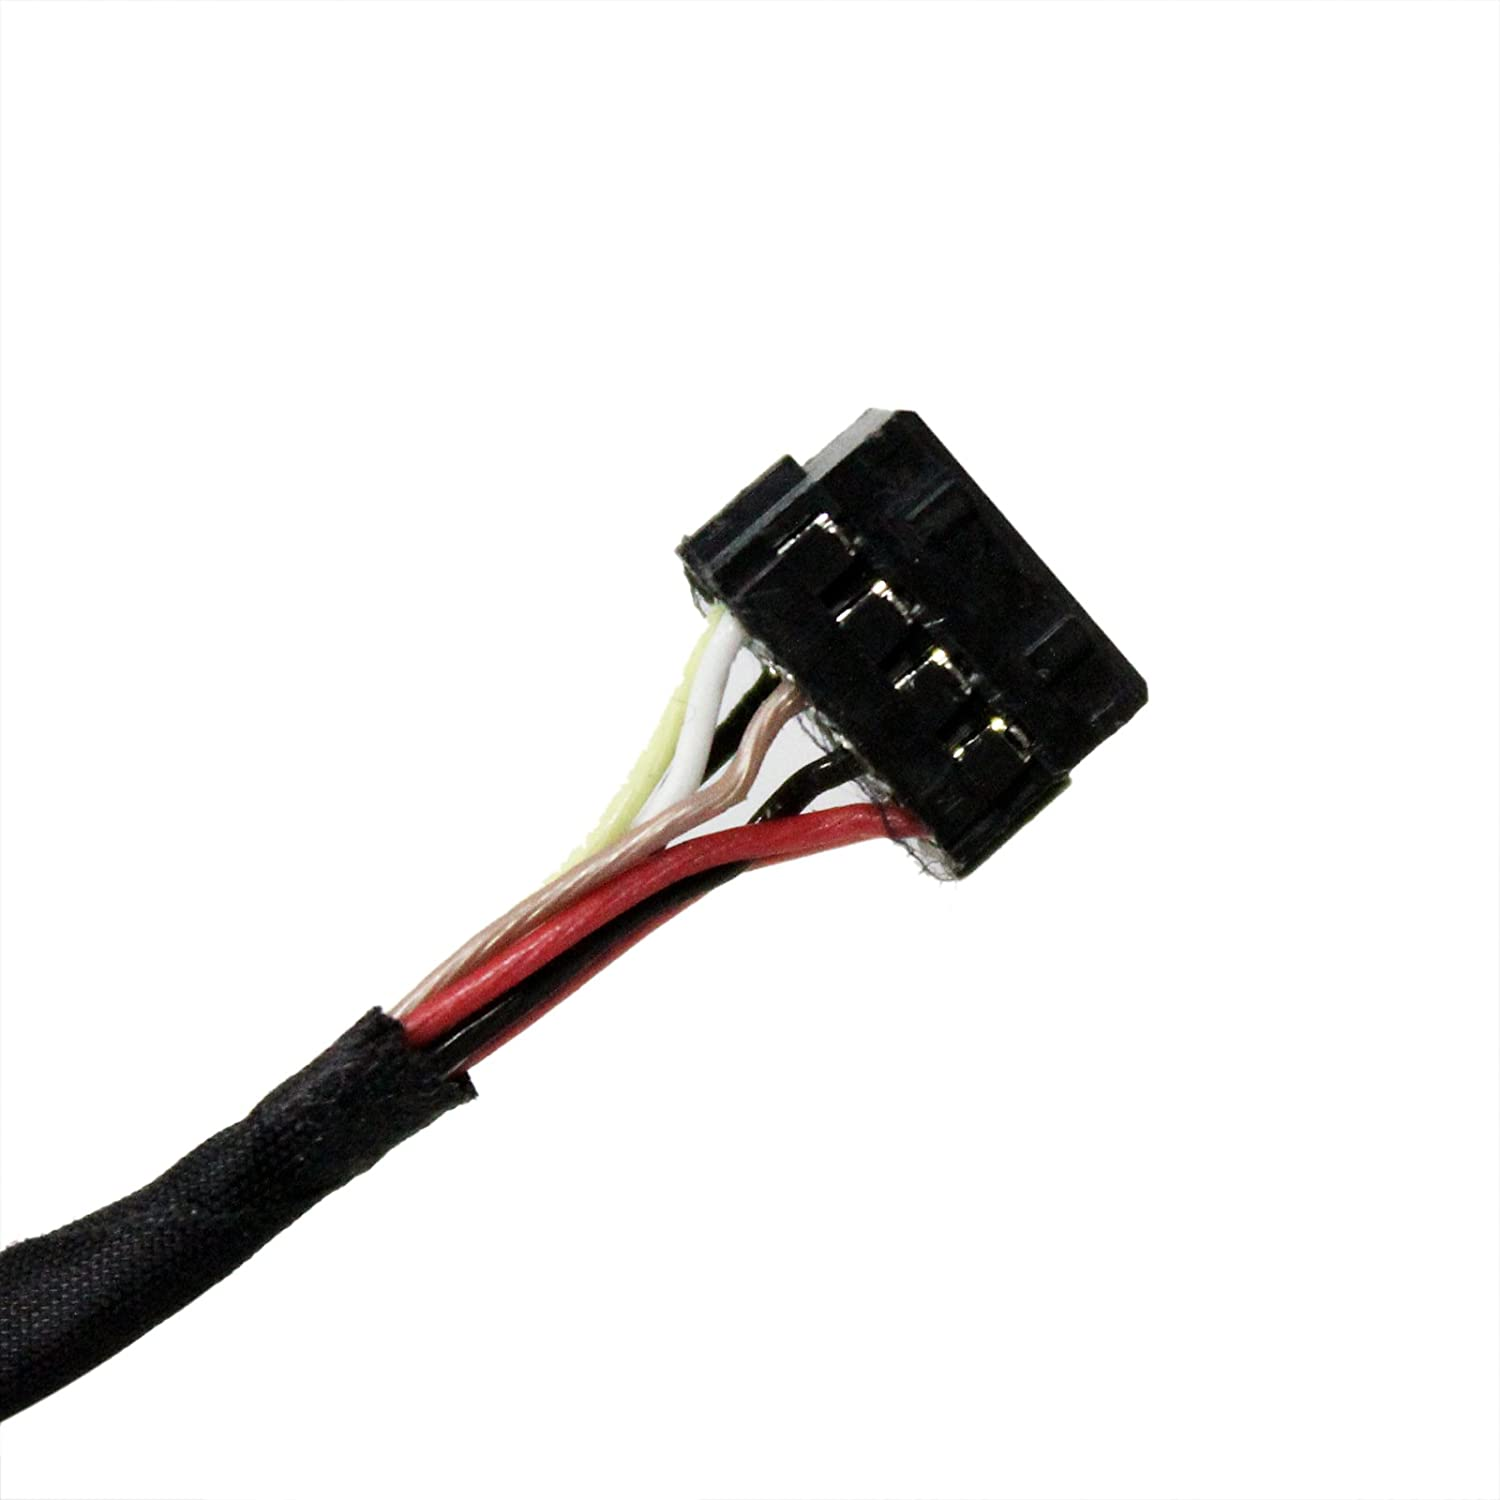 Gintai DC Power Port Jack Socket Cable Wire Replacement For HP ProBook 440 445 450 Seires 710431-YD1 721936-001 DW712